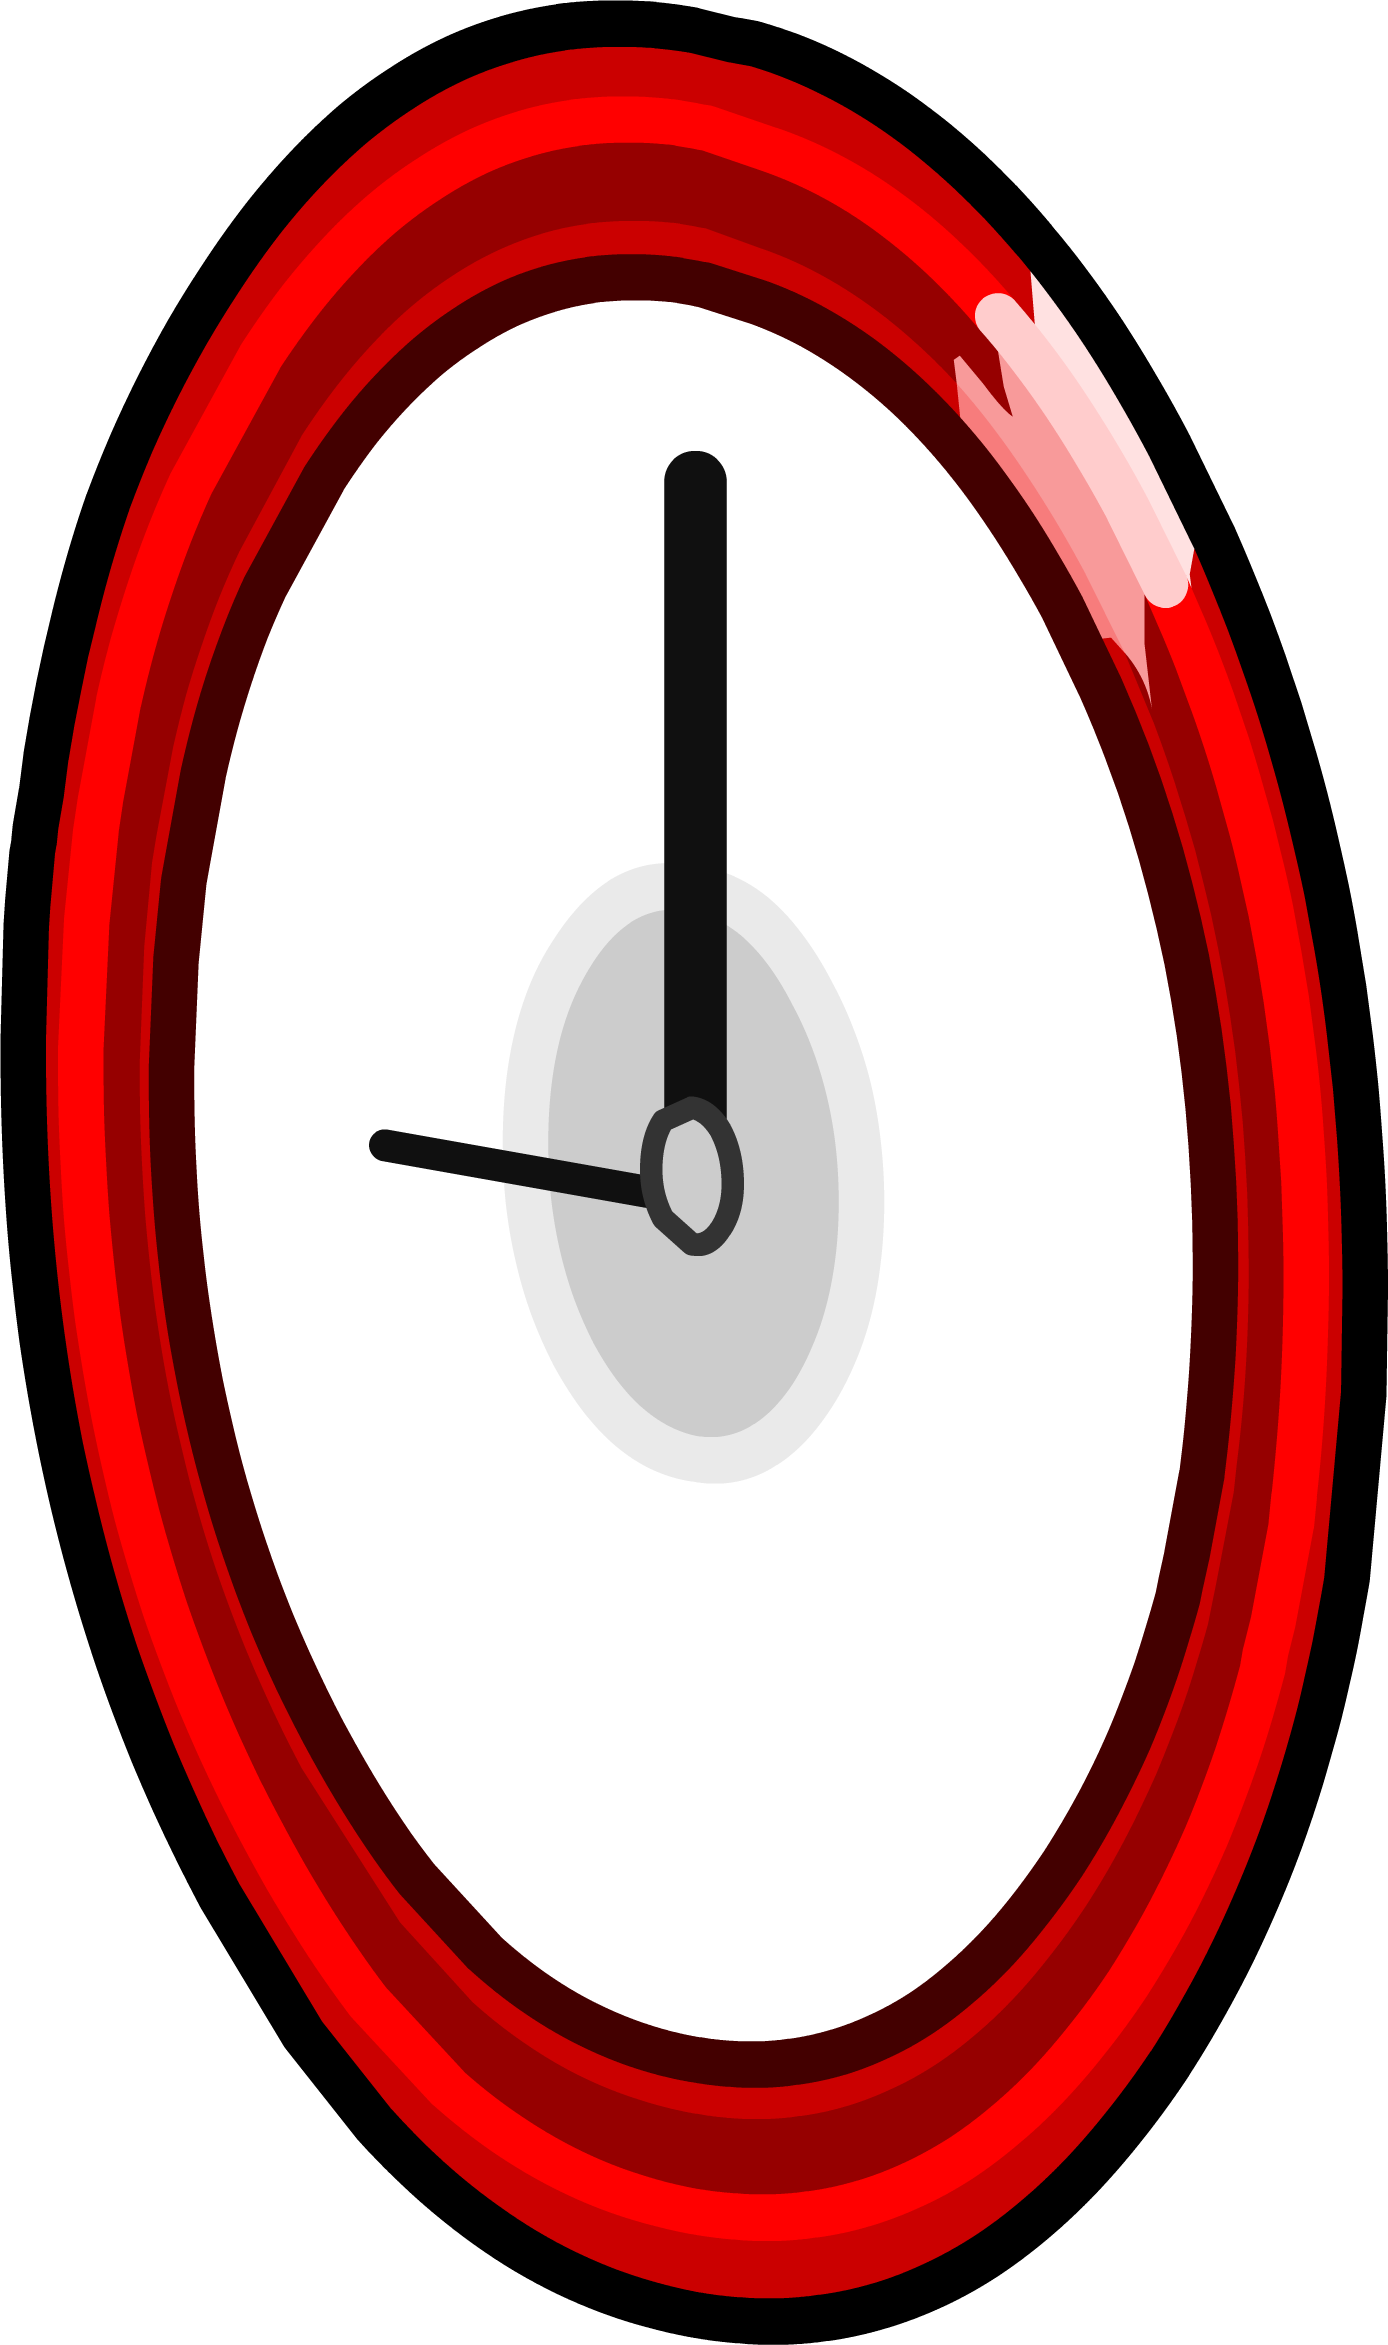 Image clock sprite png. See clipart wall watch